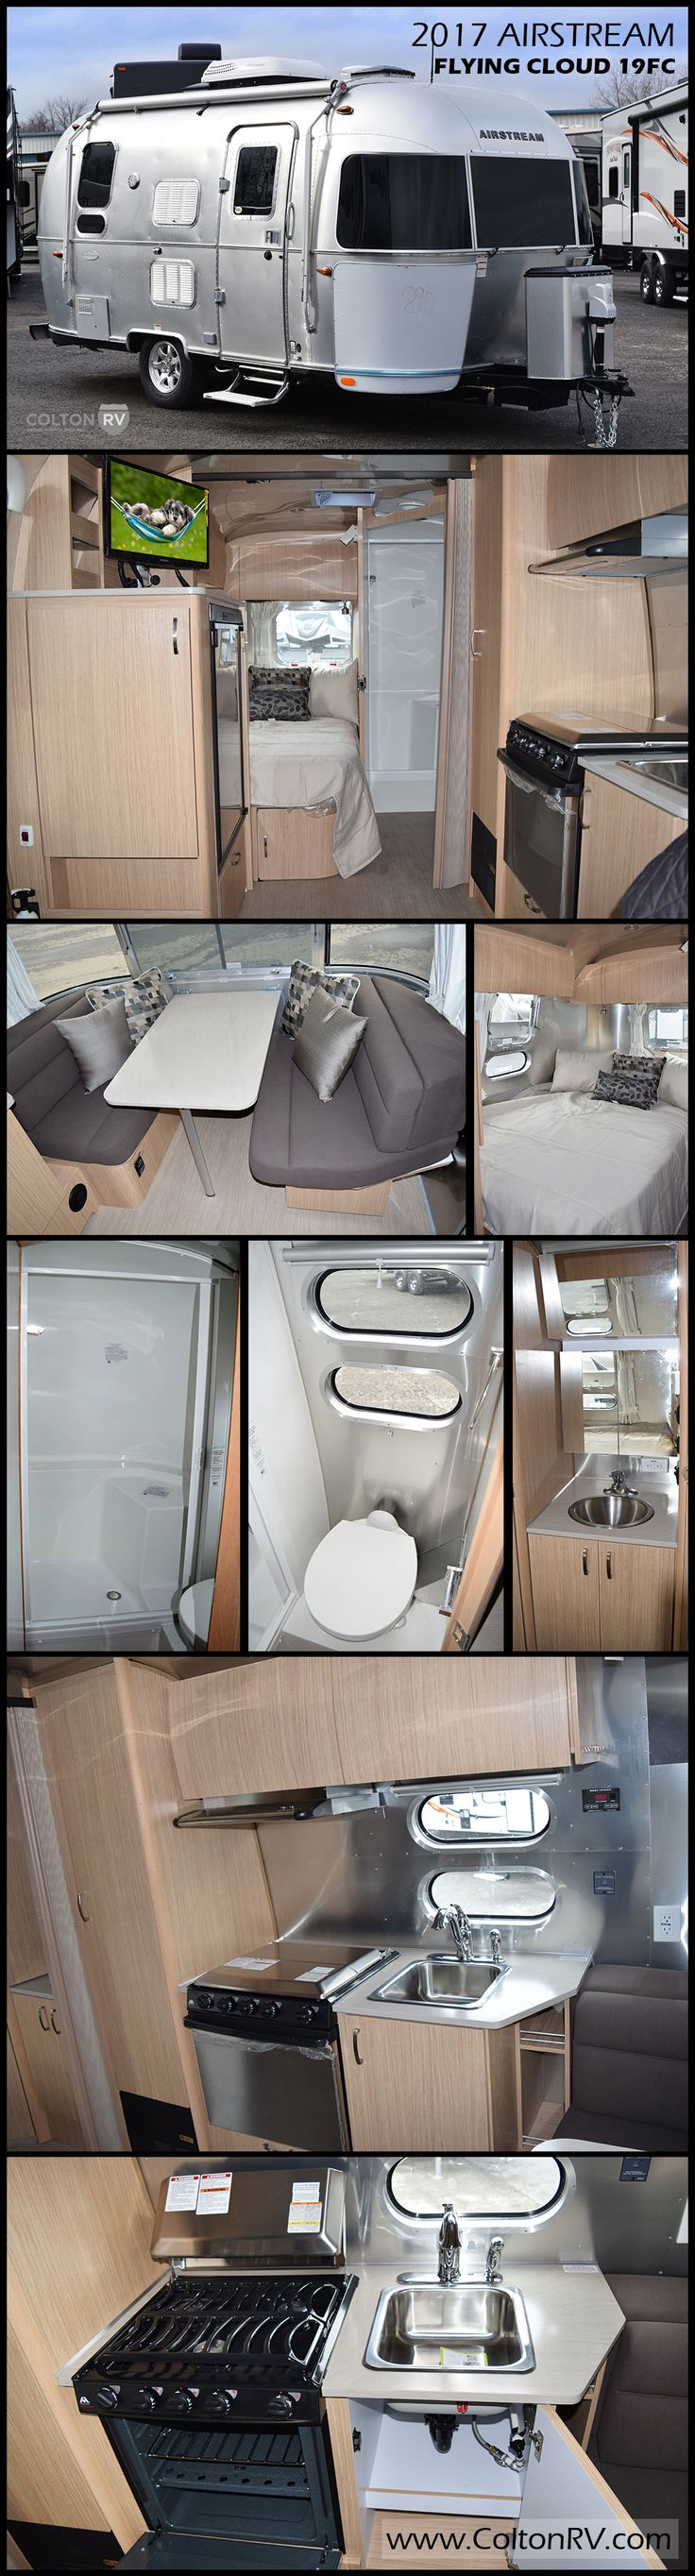 """Built to last, this 2017 FLYING CLOUD 19FC travel trailer by AIRSTREAM invites you inside with the flair of modern design. Airstreams move """"like a stream of air""""… cutting down on drag and resulting in far better gas mileage than traditional box style trailers. Plus they have a low center of gravity which means more stability when it comes to turns, unexpected swerves and gusts of wind."""